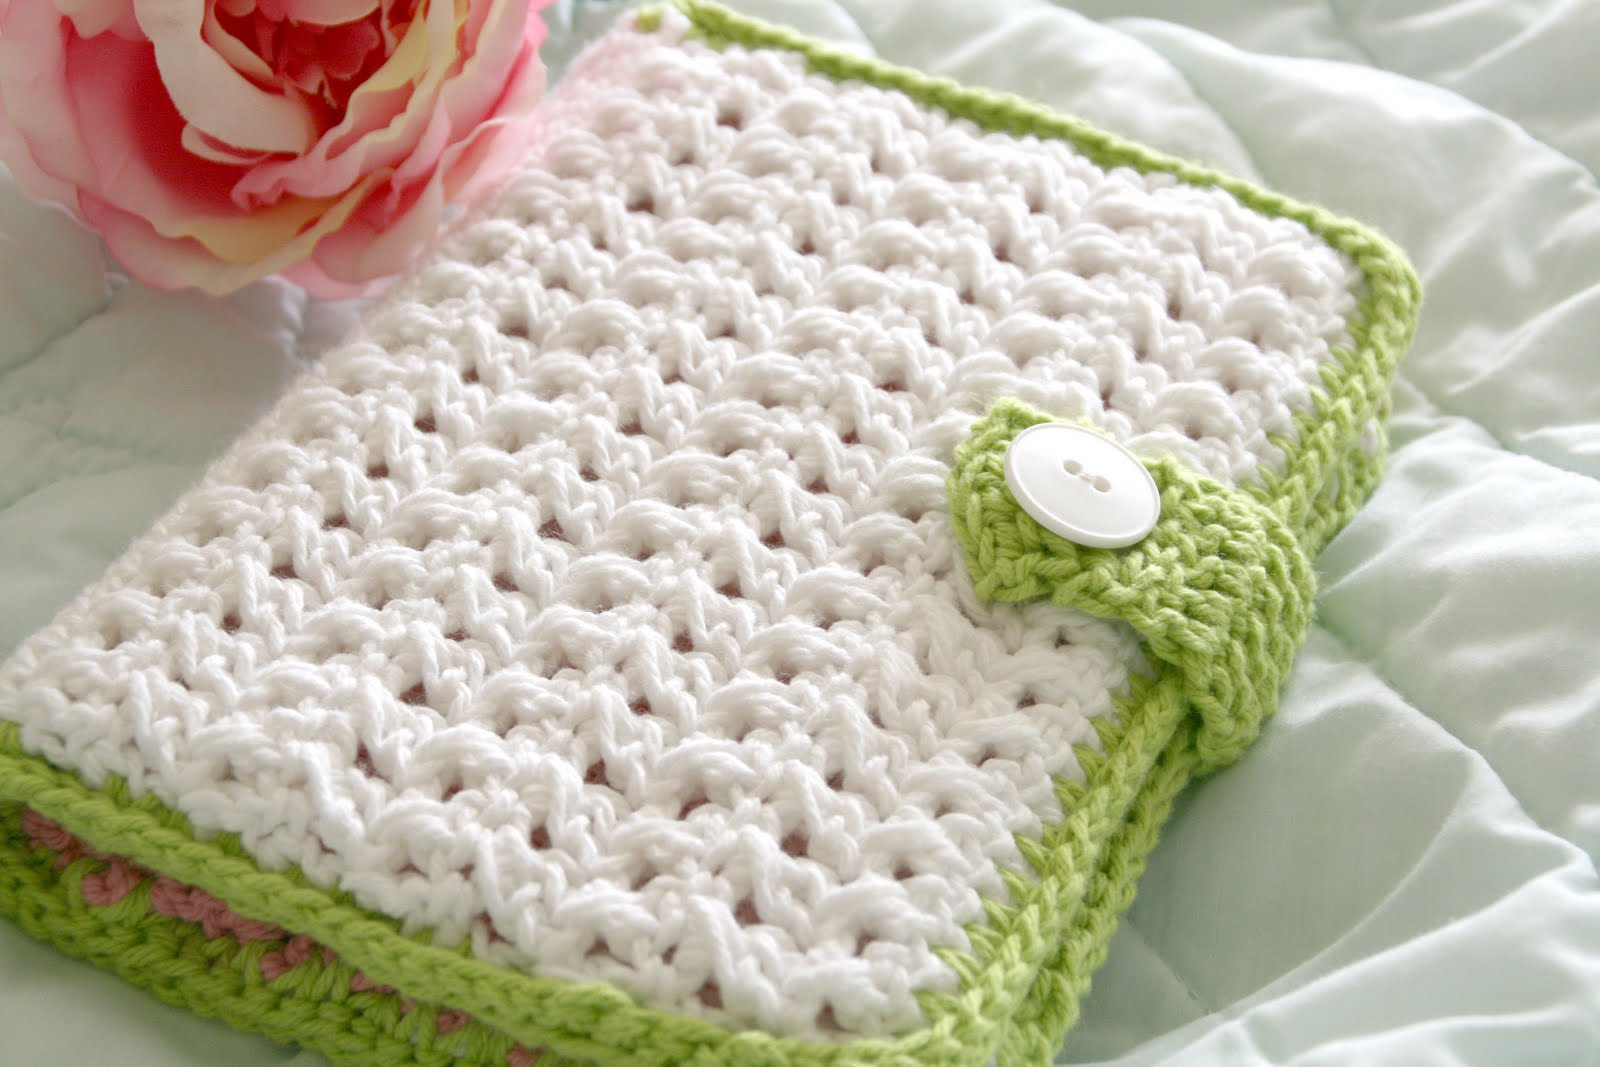 Cool Crochet Patterns : ... Crochet Place: Some Fun and Cute Patterns and Cool Crochet Stuff